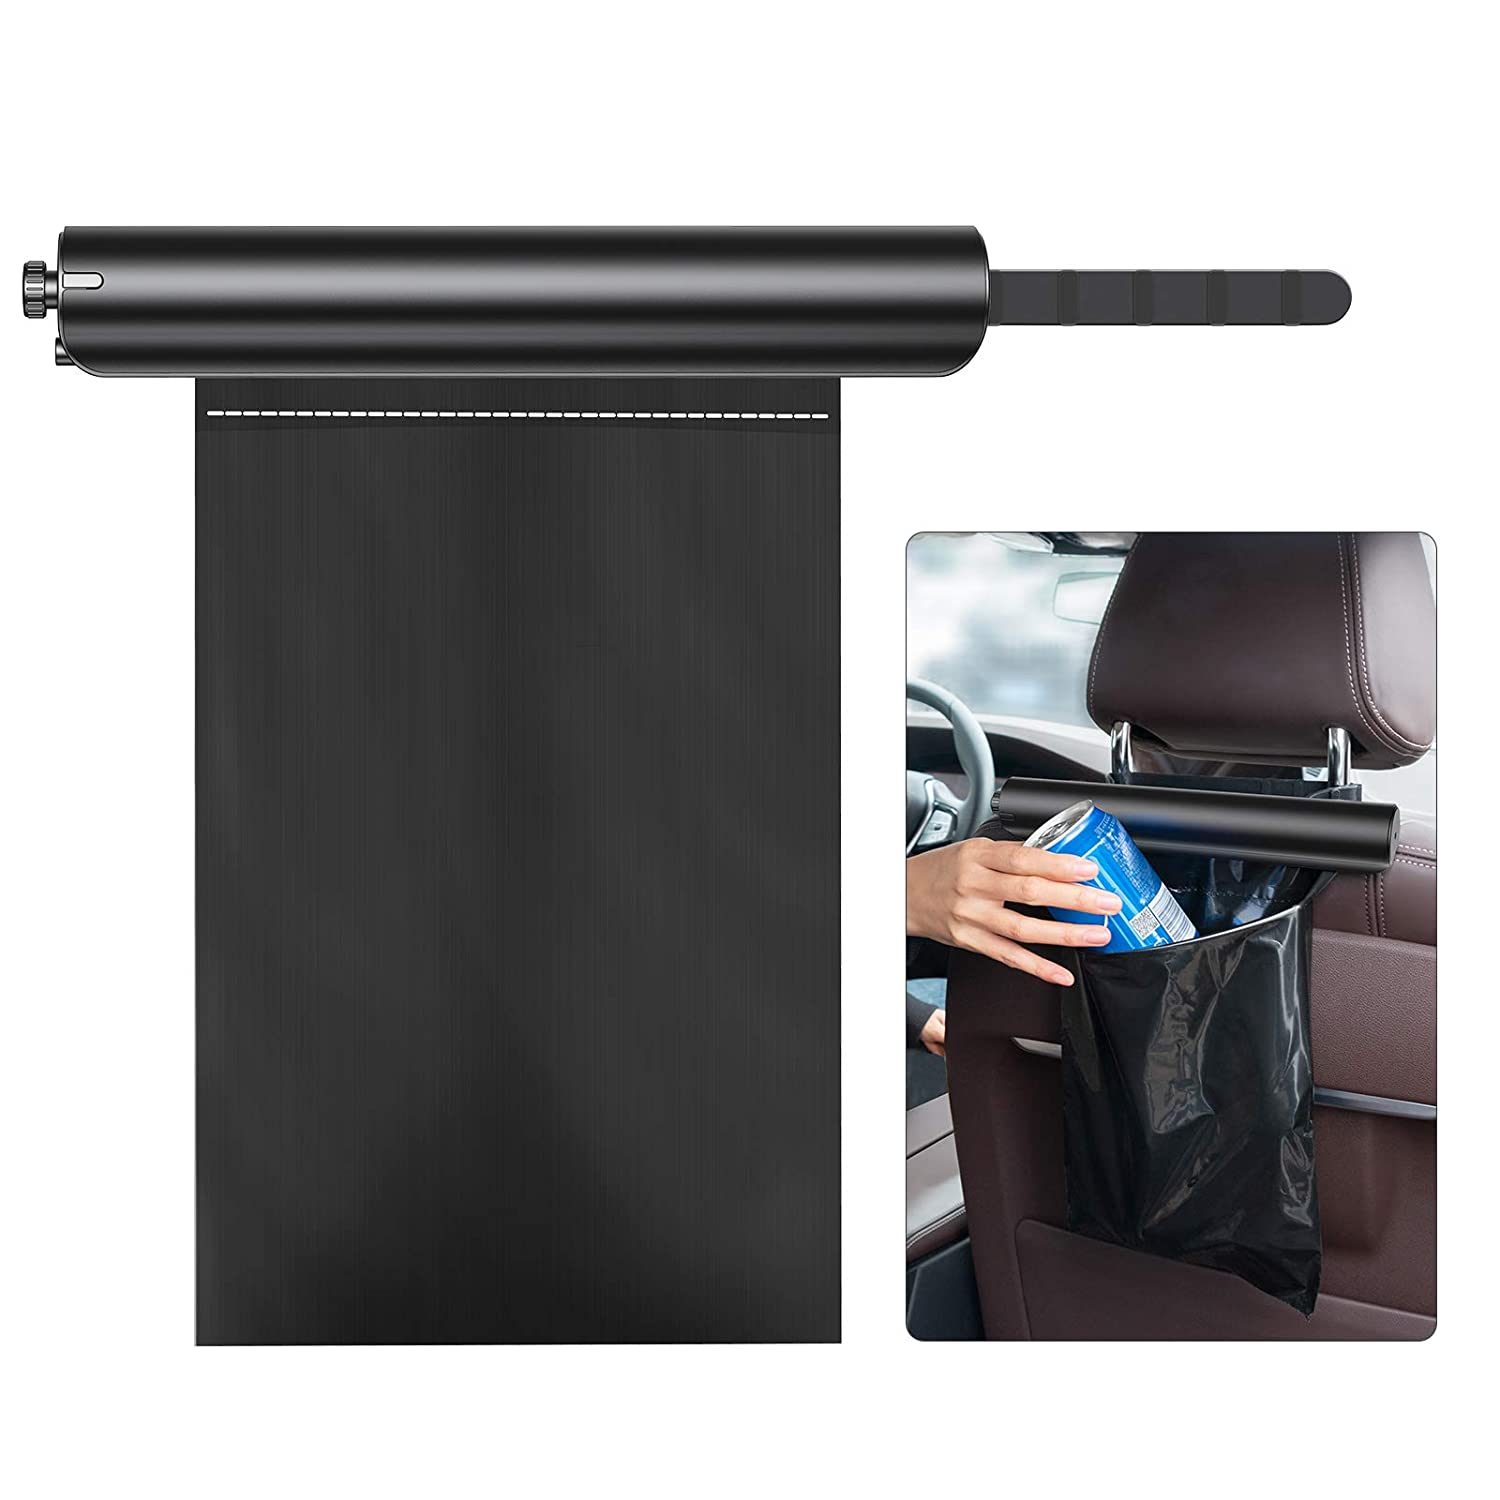 Car Trash Can 40% OFF Cheap Sale Upgraded BOSAI Holder Max 52% OFF Garbage Metal bag Aluminum